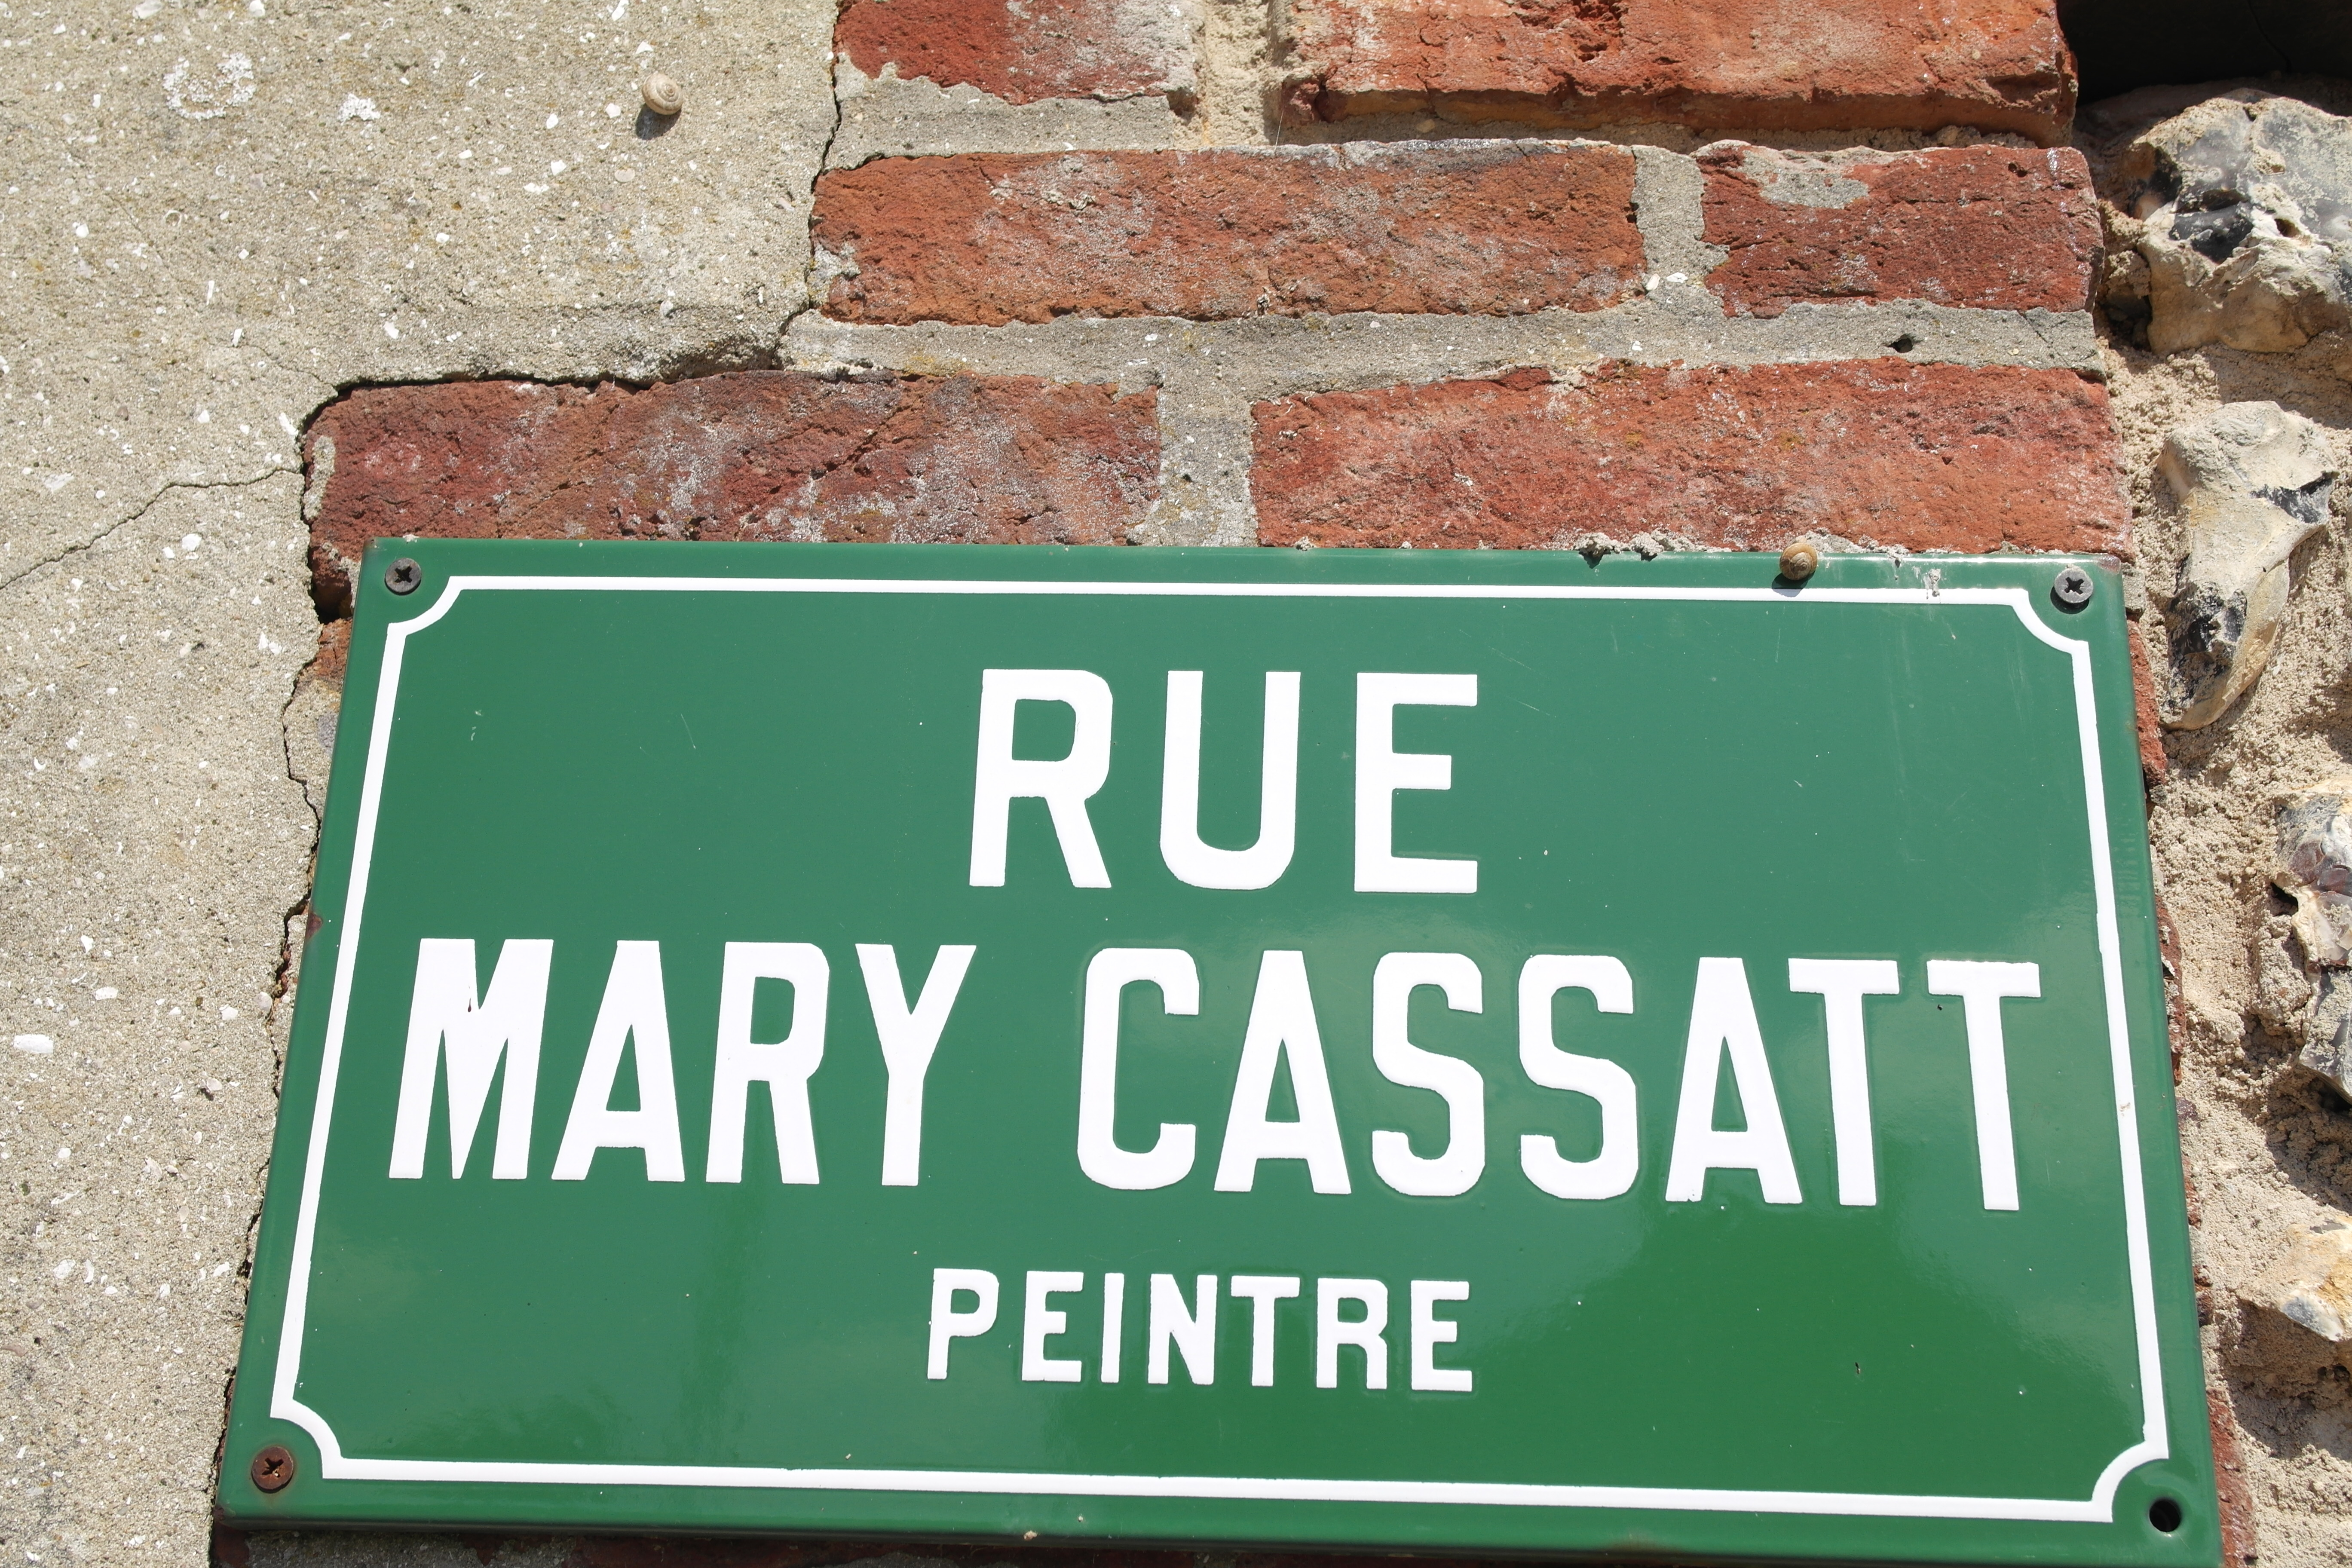 Chateau de Beaufresne is now located on rue Mary Cassatt.